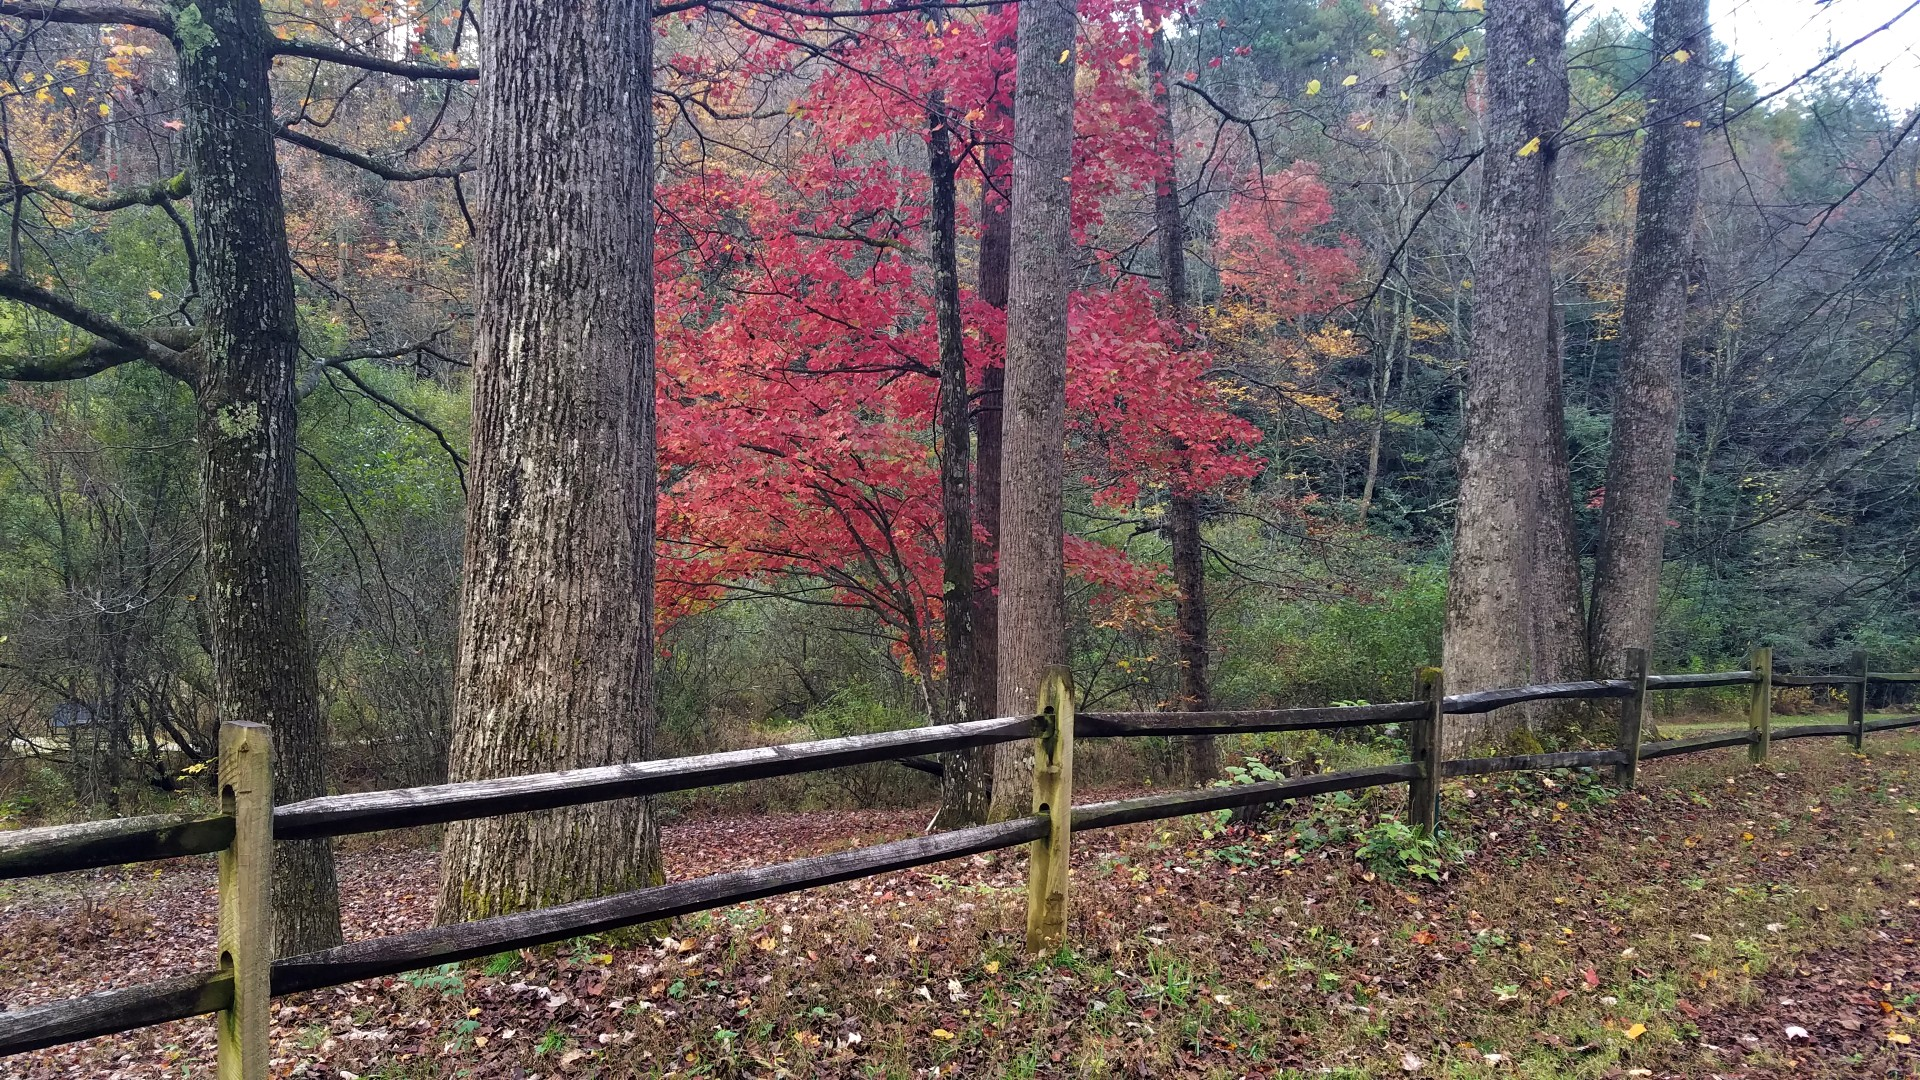 Maple tree with bold color standing out among other trees along a split rail fenced forest road